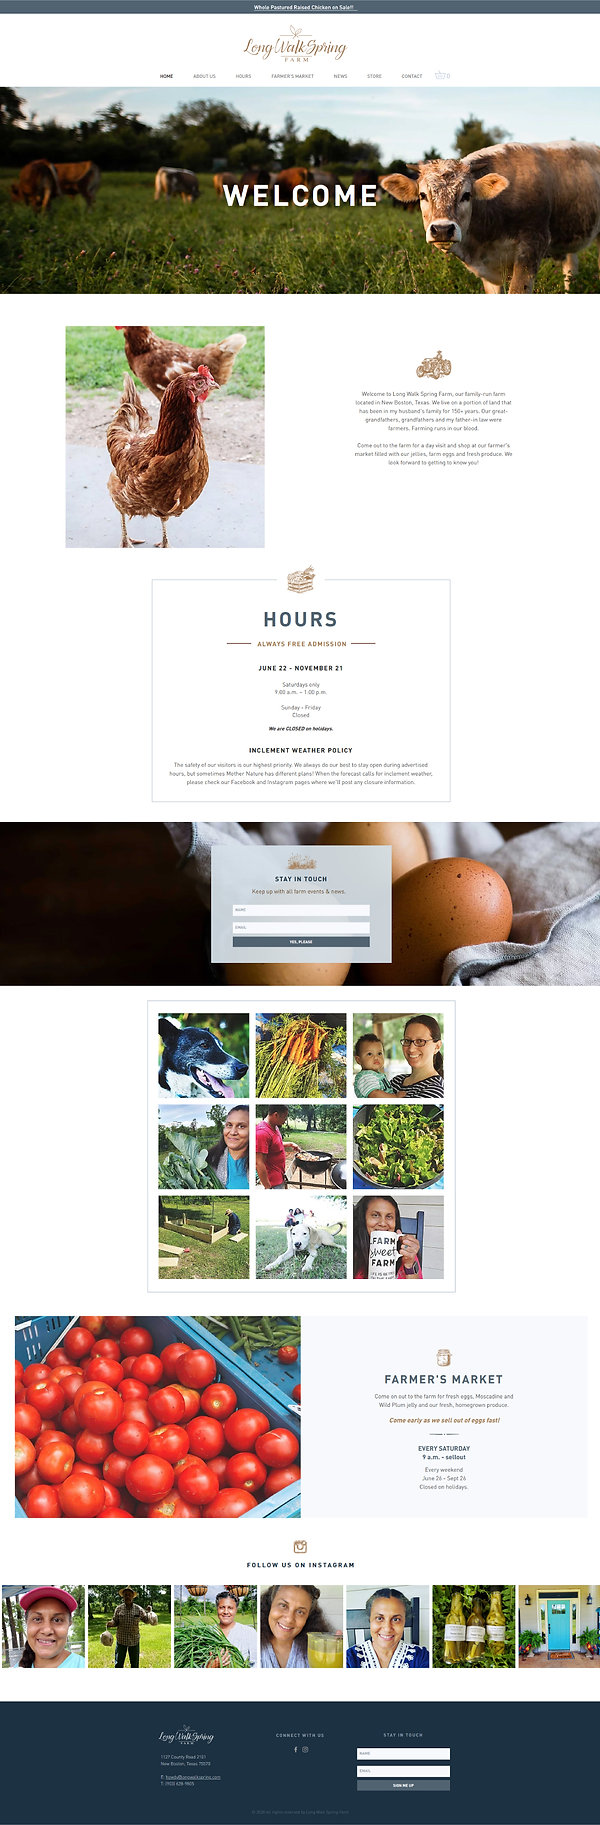 Home page of a Wix website for Long Walk Spring Farm in New Boston, TX, designed by Christy Evans